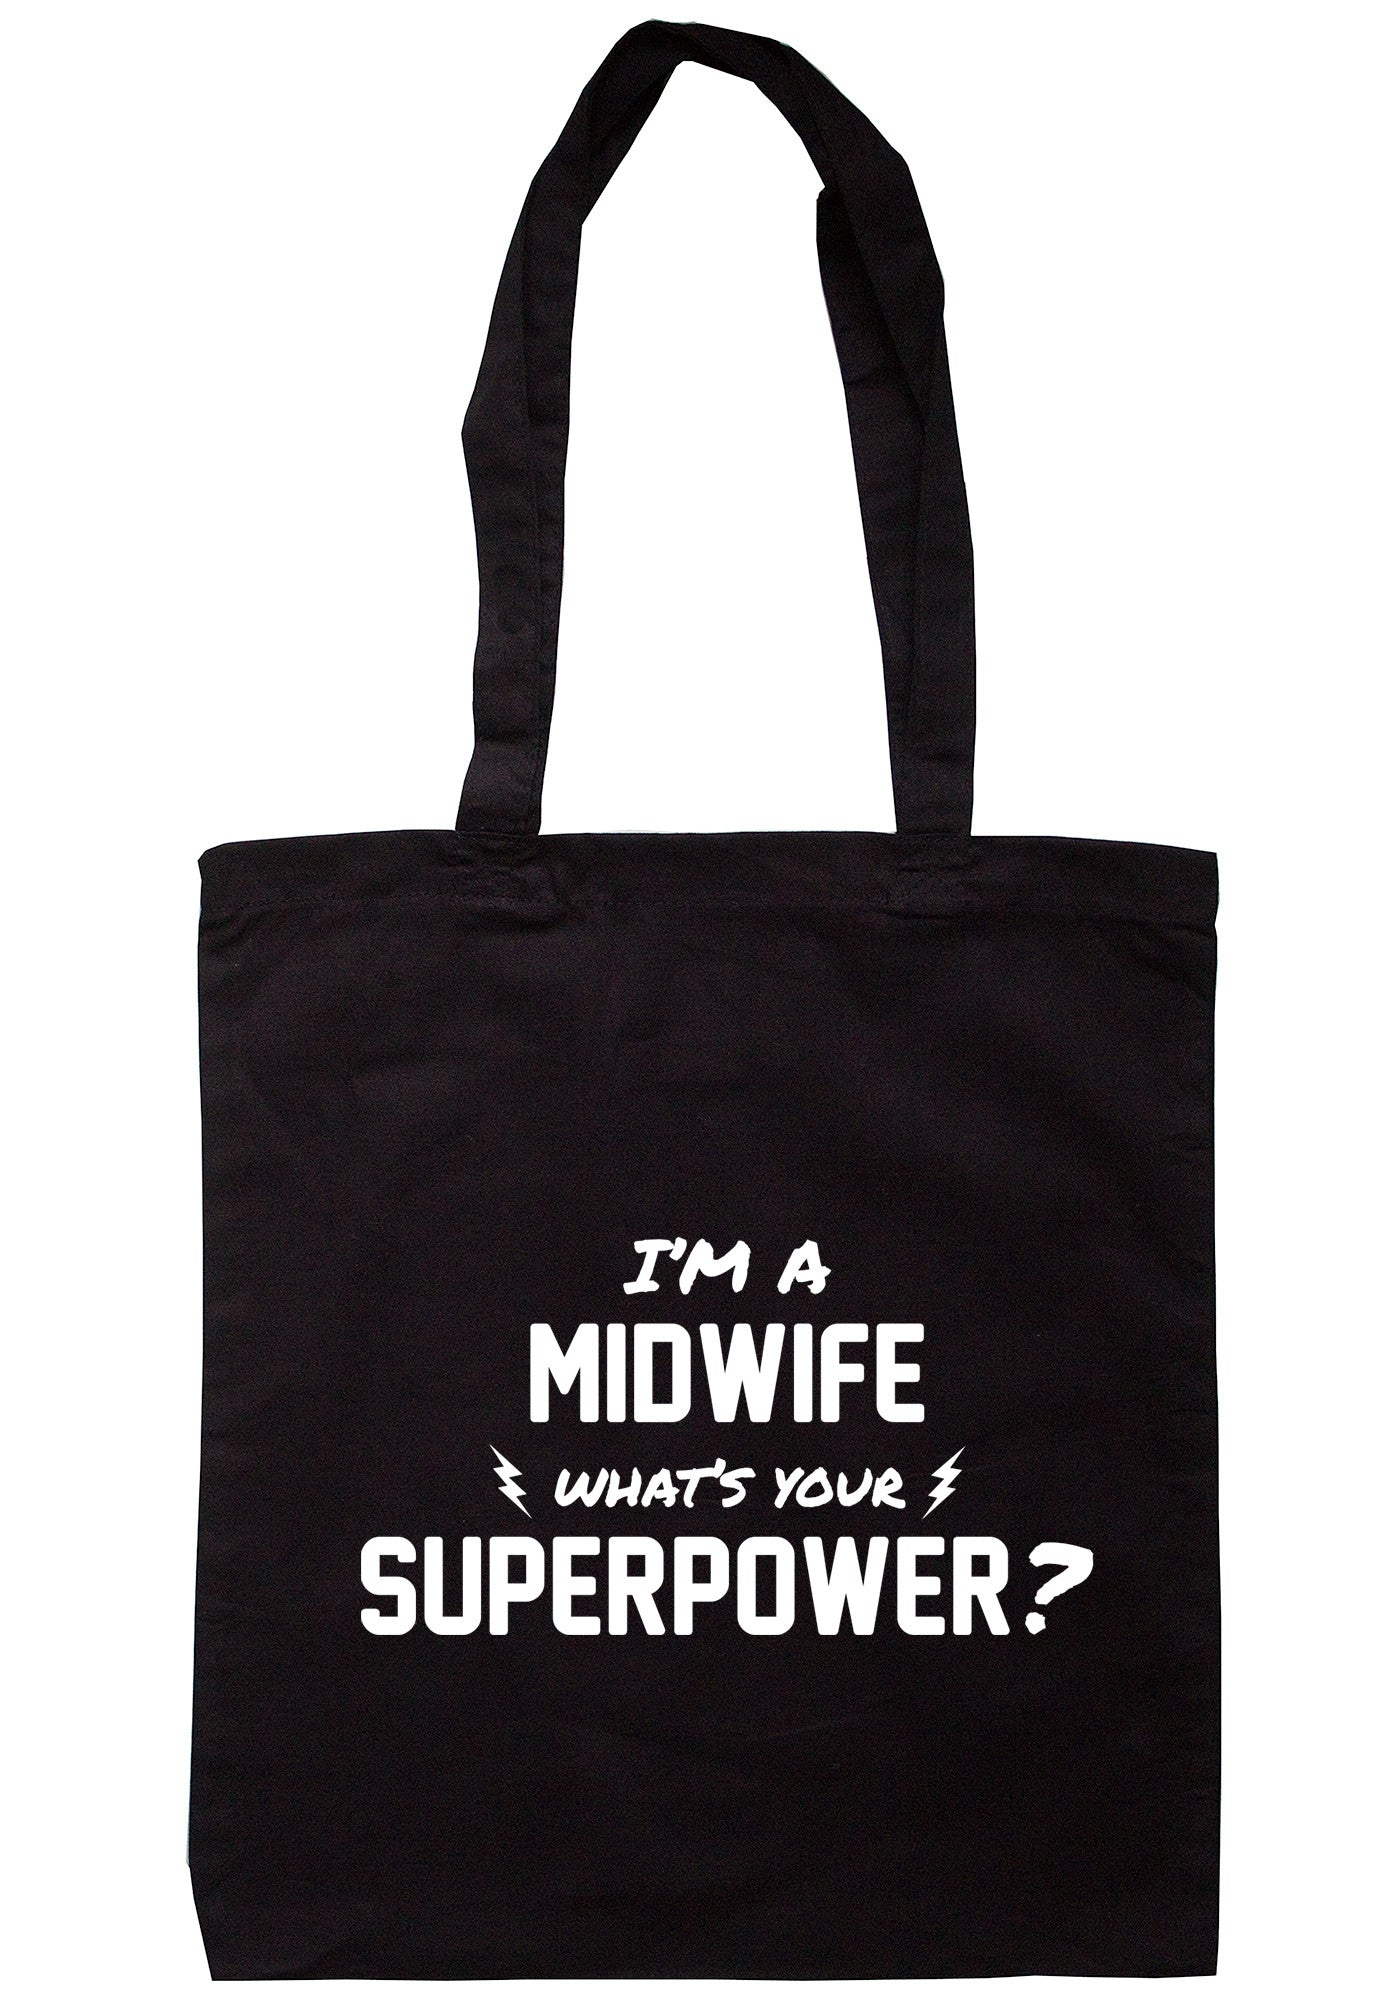 I'm A Midwife What's Your Superpower? Tote Bag TB0527